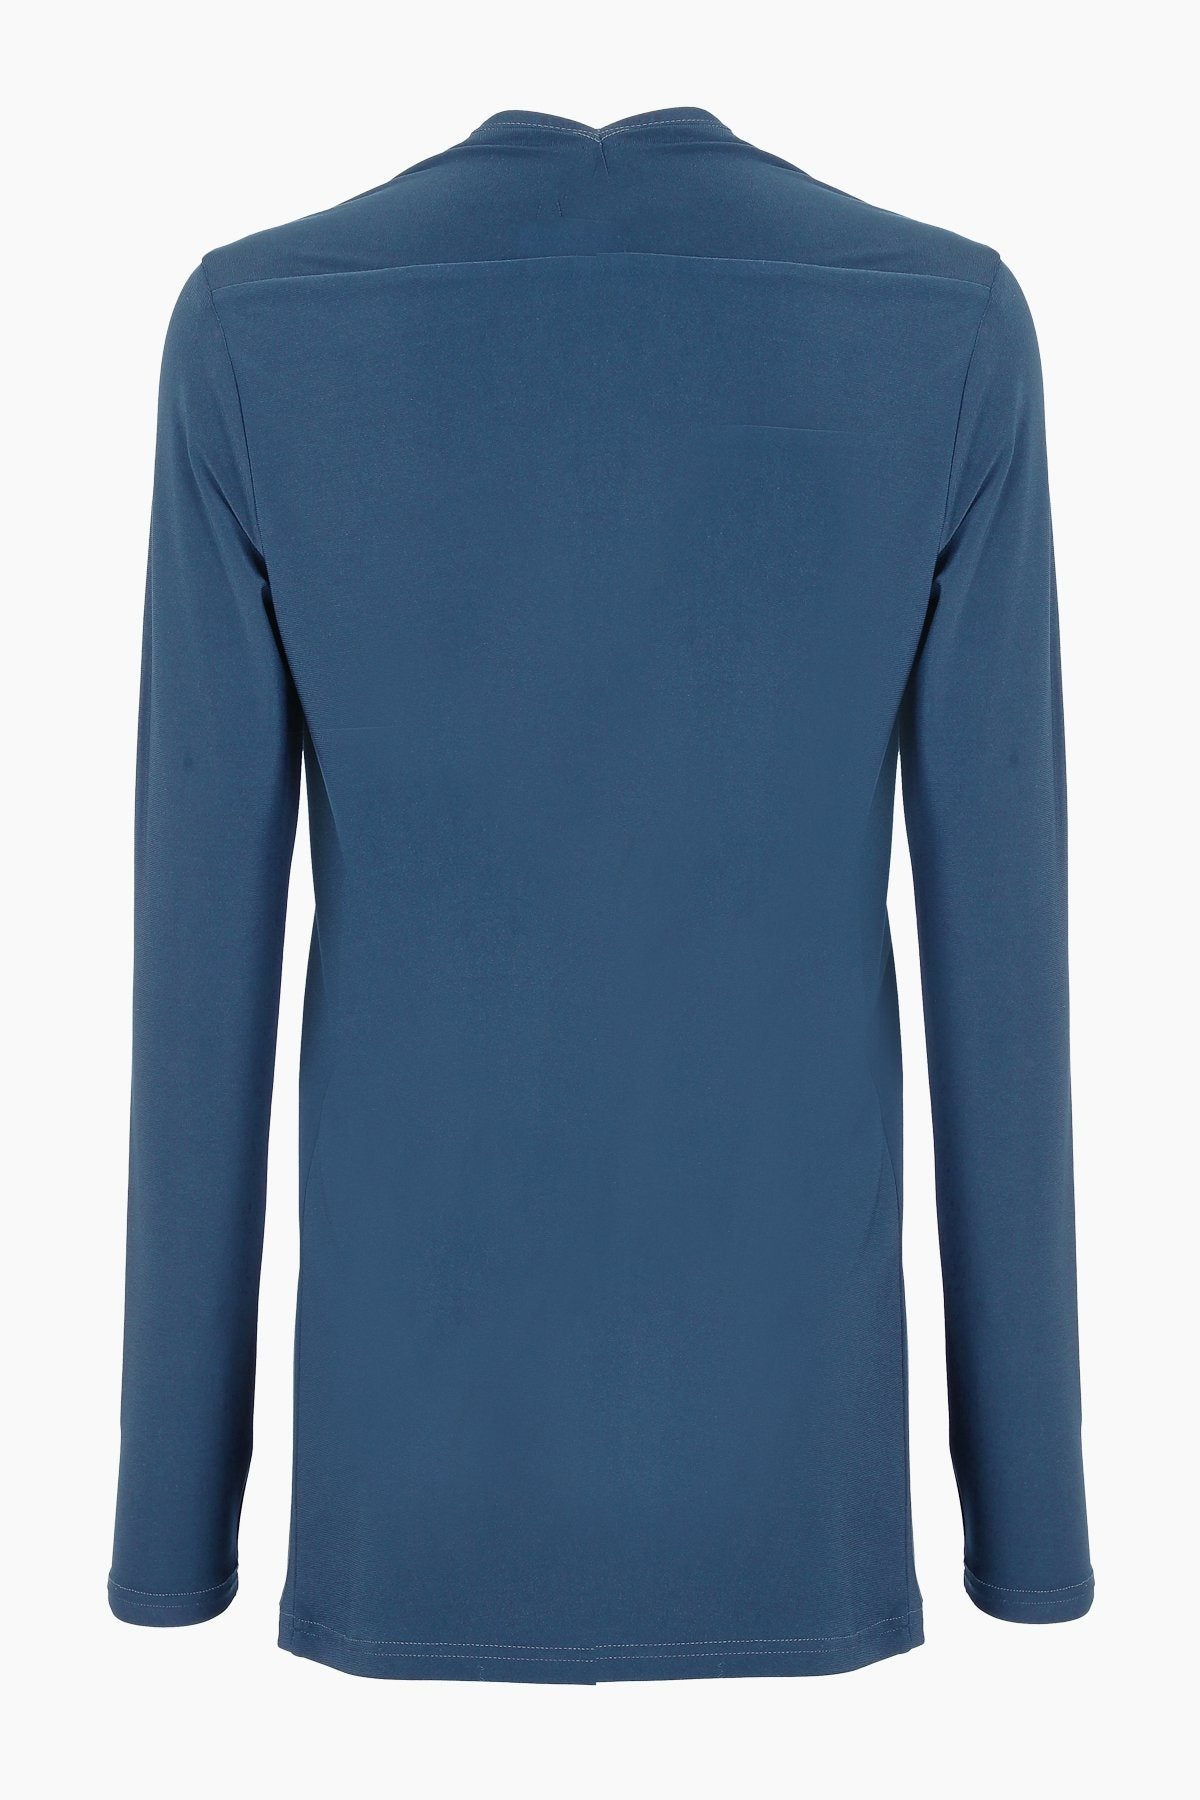 Long Sleeve Crossover Top teal